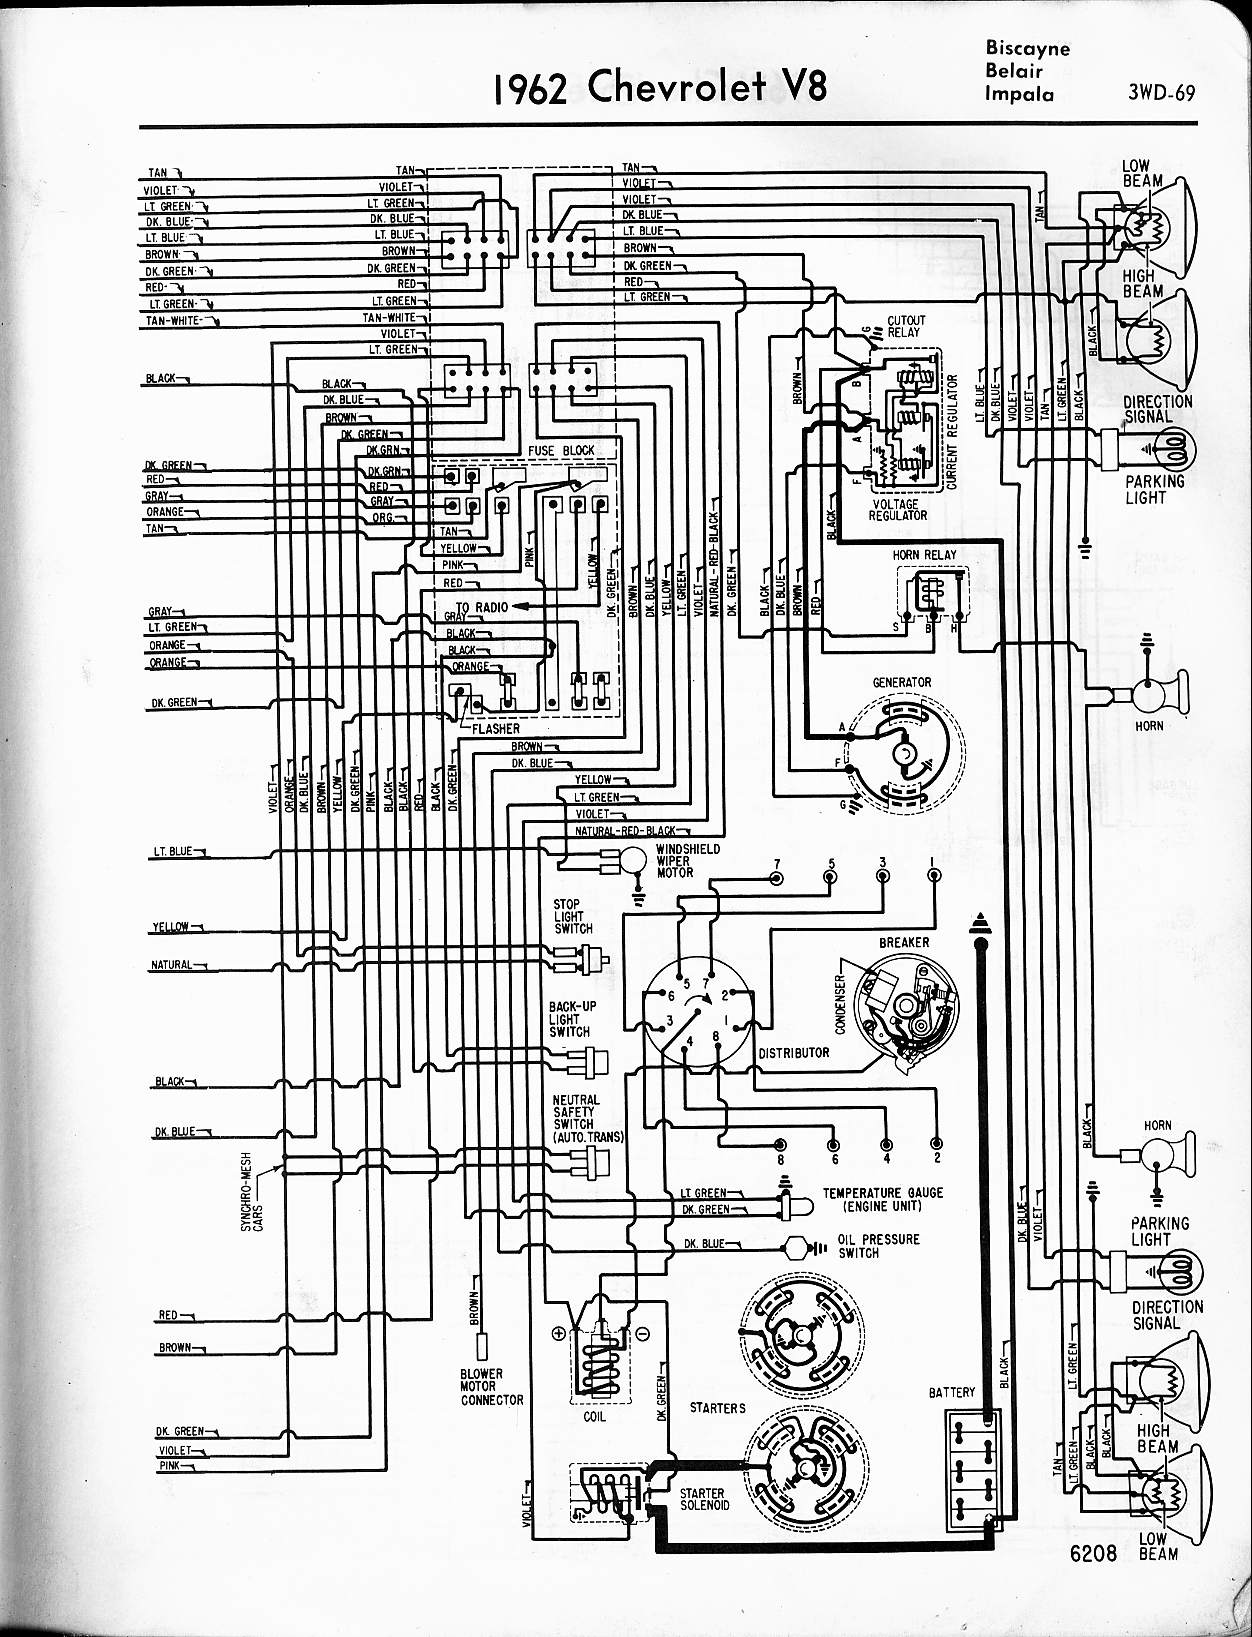 65 Bel Air Wire Diagram Engine Control Wiring 60 Apache 57 Chevy Diagrams Rh Oldcarmanualproject Com 64